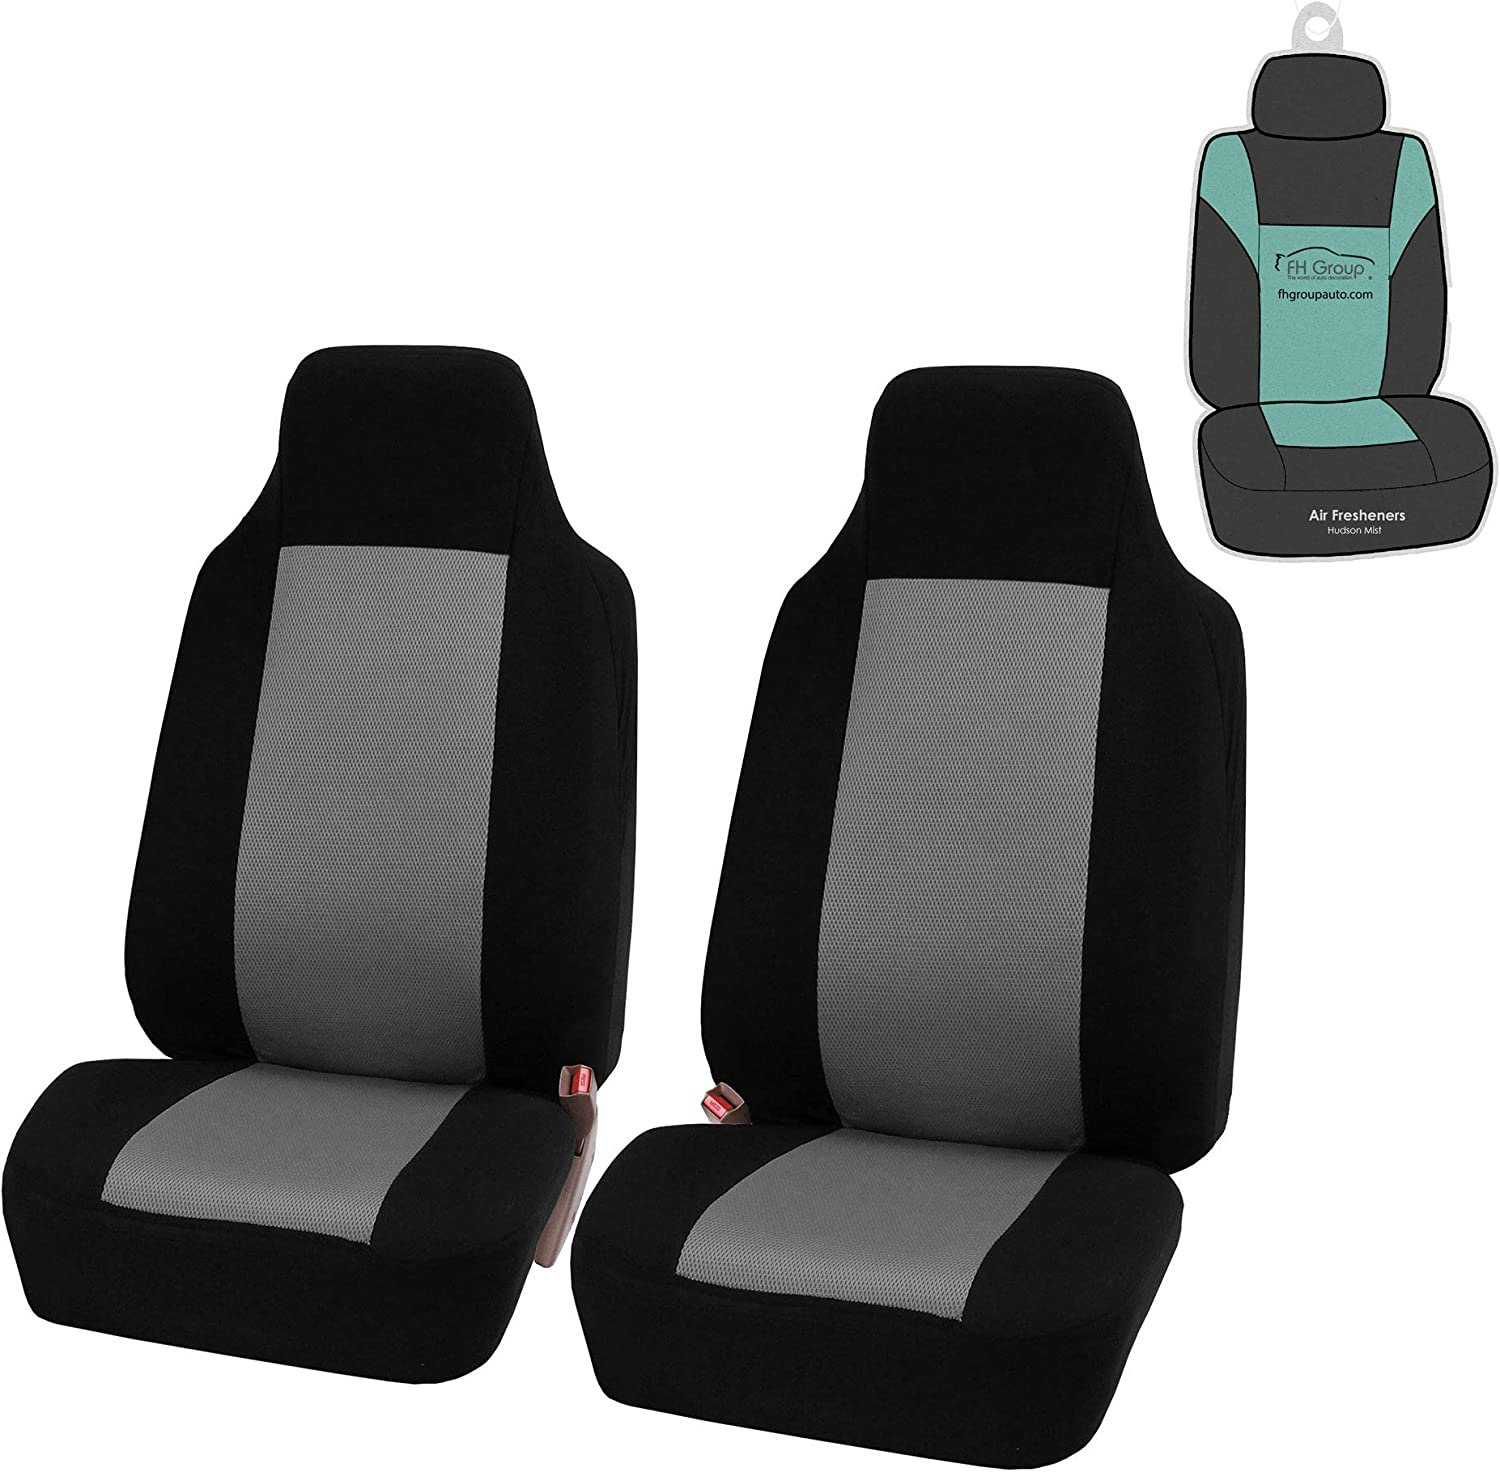 FH Group FB102102 Classic Cloth Seat Covers (Gray) Front Set with Gift – Universal Fit for Cars Trucks & SUVs